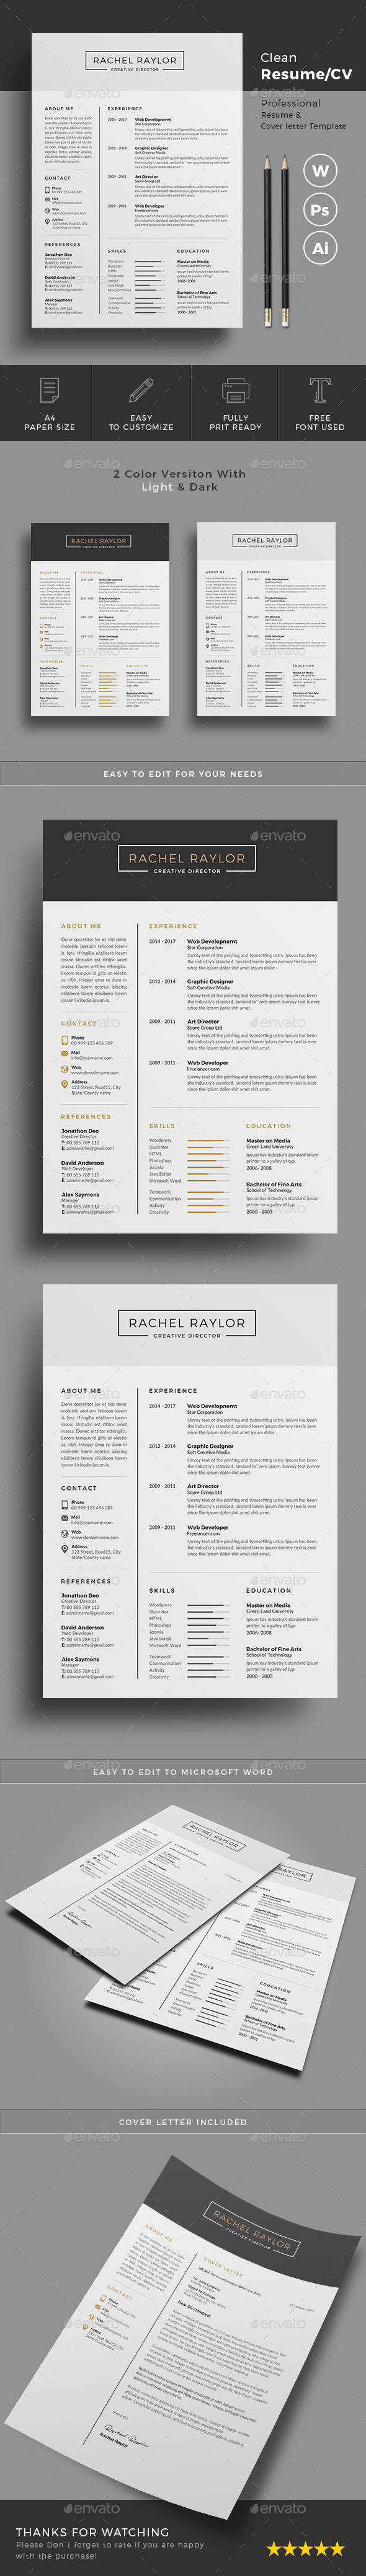 Charming 1 Year Experience Resume Format For Dot Net Thick 1.5 Inch Hexagon Template Shaped 100 Template 1099 Excel Template Young 1099 Misc Form Template Blue12 Inch Ruler Template Resume Templates From GraphicRiver